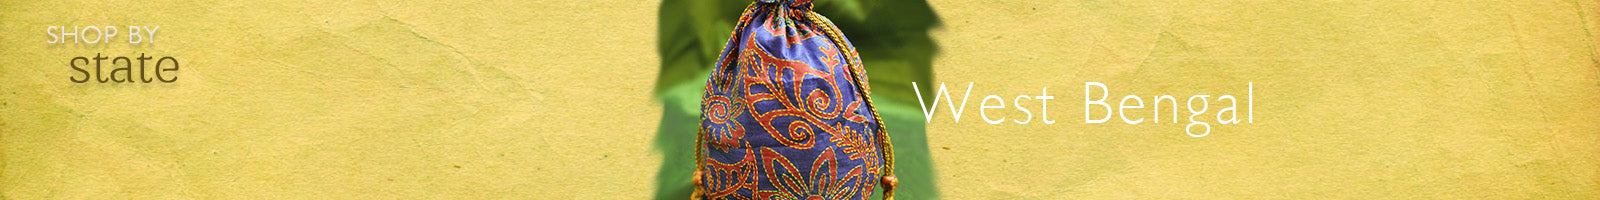 Buy Indian Handicrafts Online at The India Craft House for a perfect gift. Authentic handcrafted Arts & Crafts from West Bengal. Support the Artisan. Promote Fair Trade